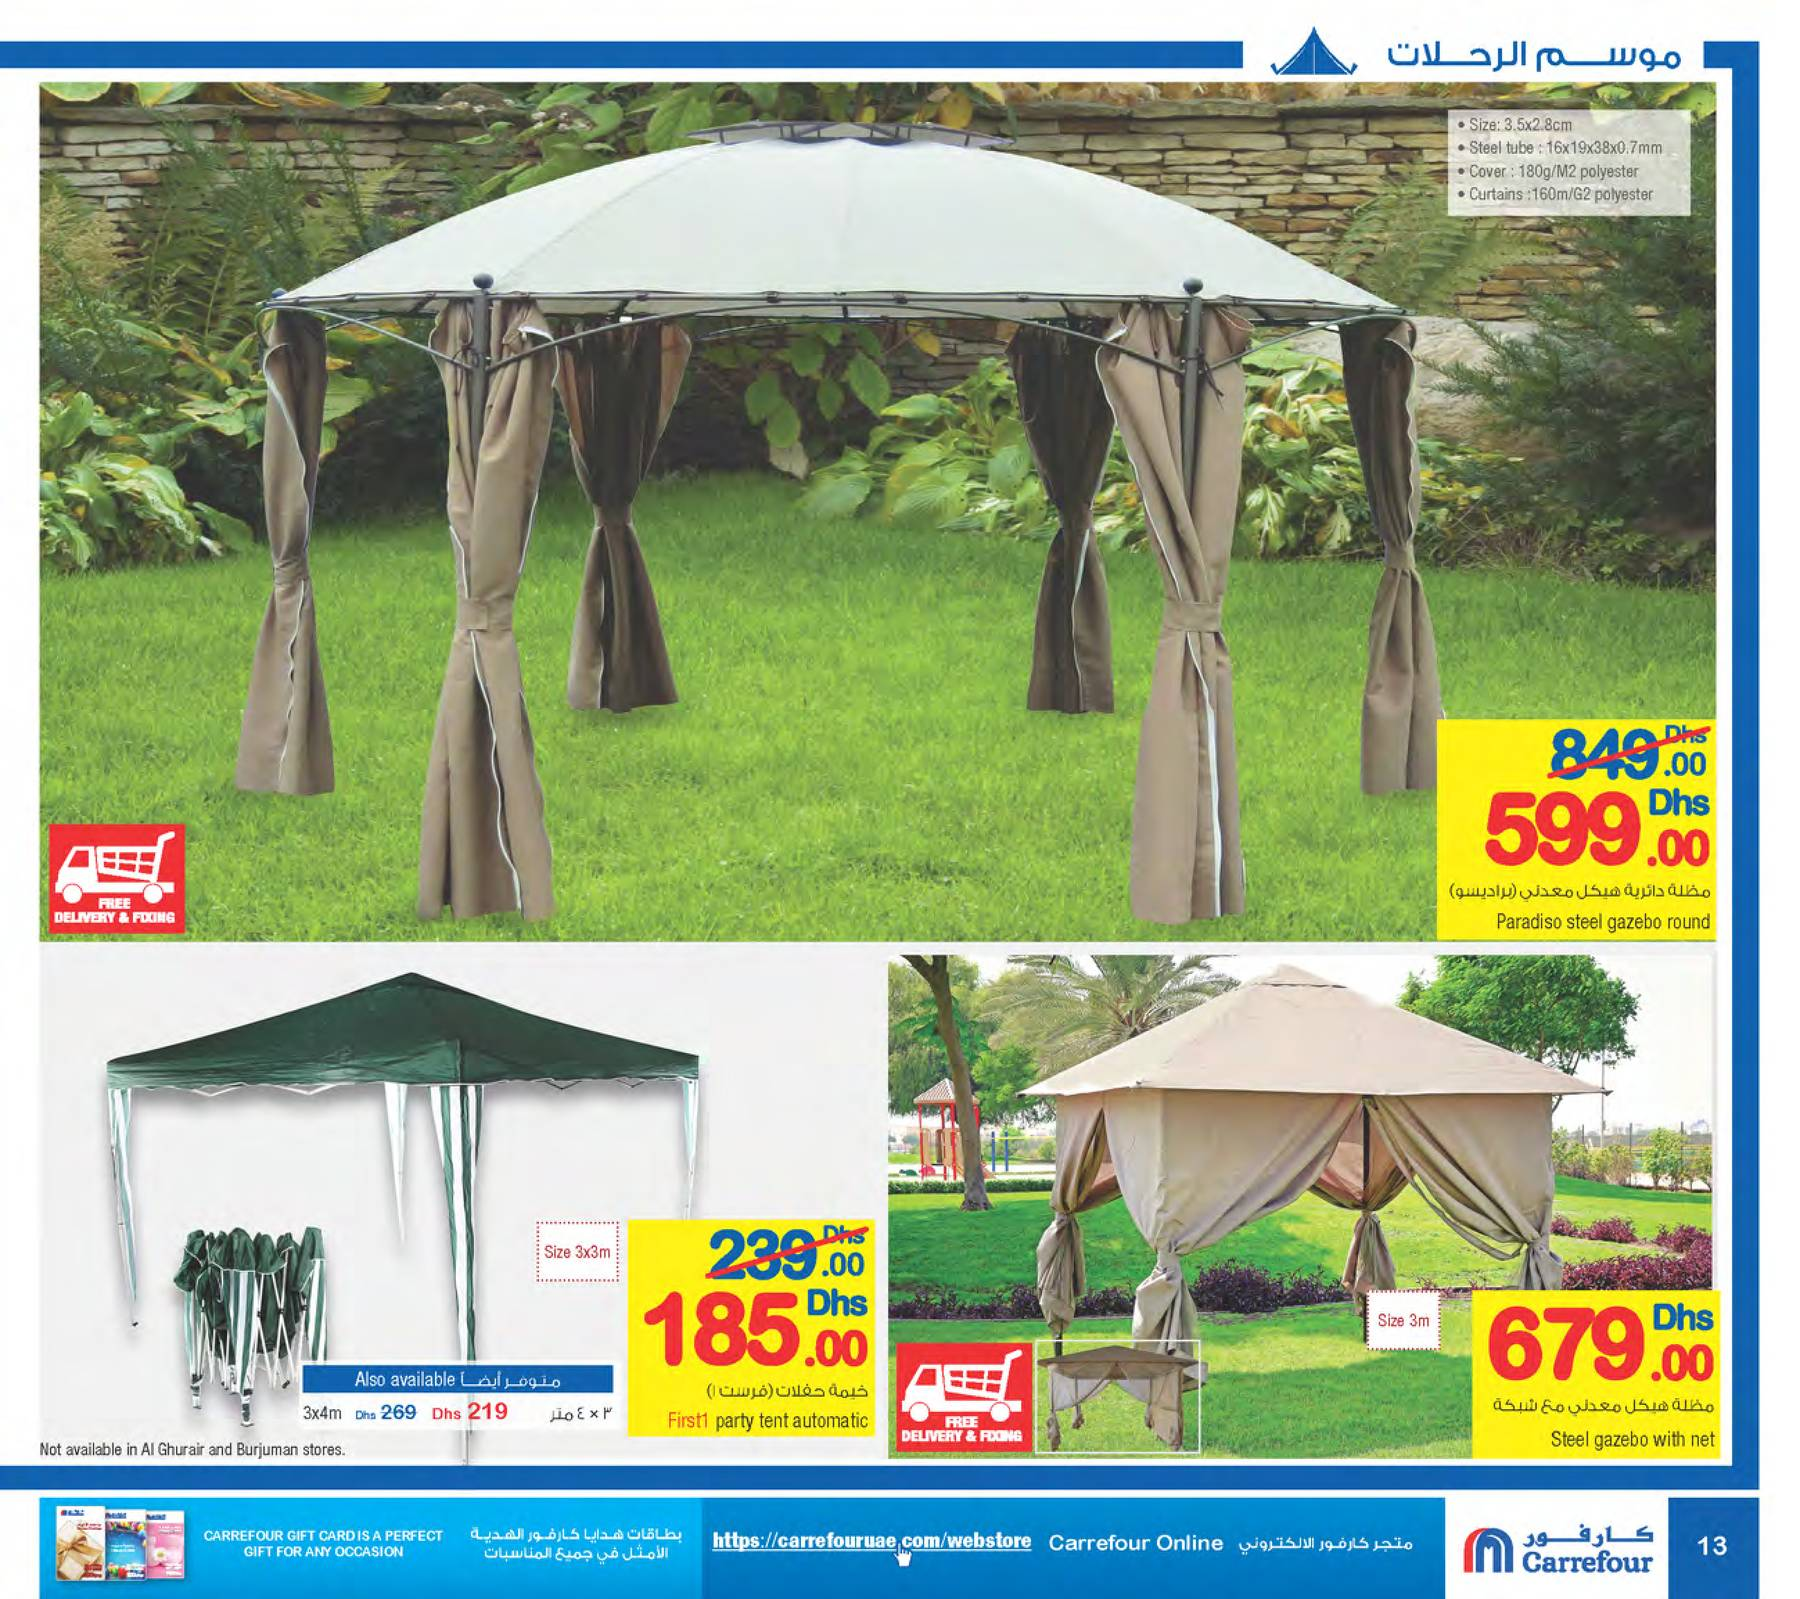 Enjoy Great Outdoors! from Carrefour until 11th March - Carrefour Offers u0026 Promotions  sc 1 st  WoWDeals & Enjoy Great Outdoors! from Carrefour until 11th March - Carrefour ...